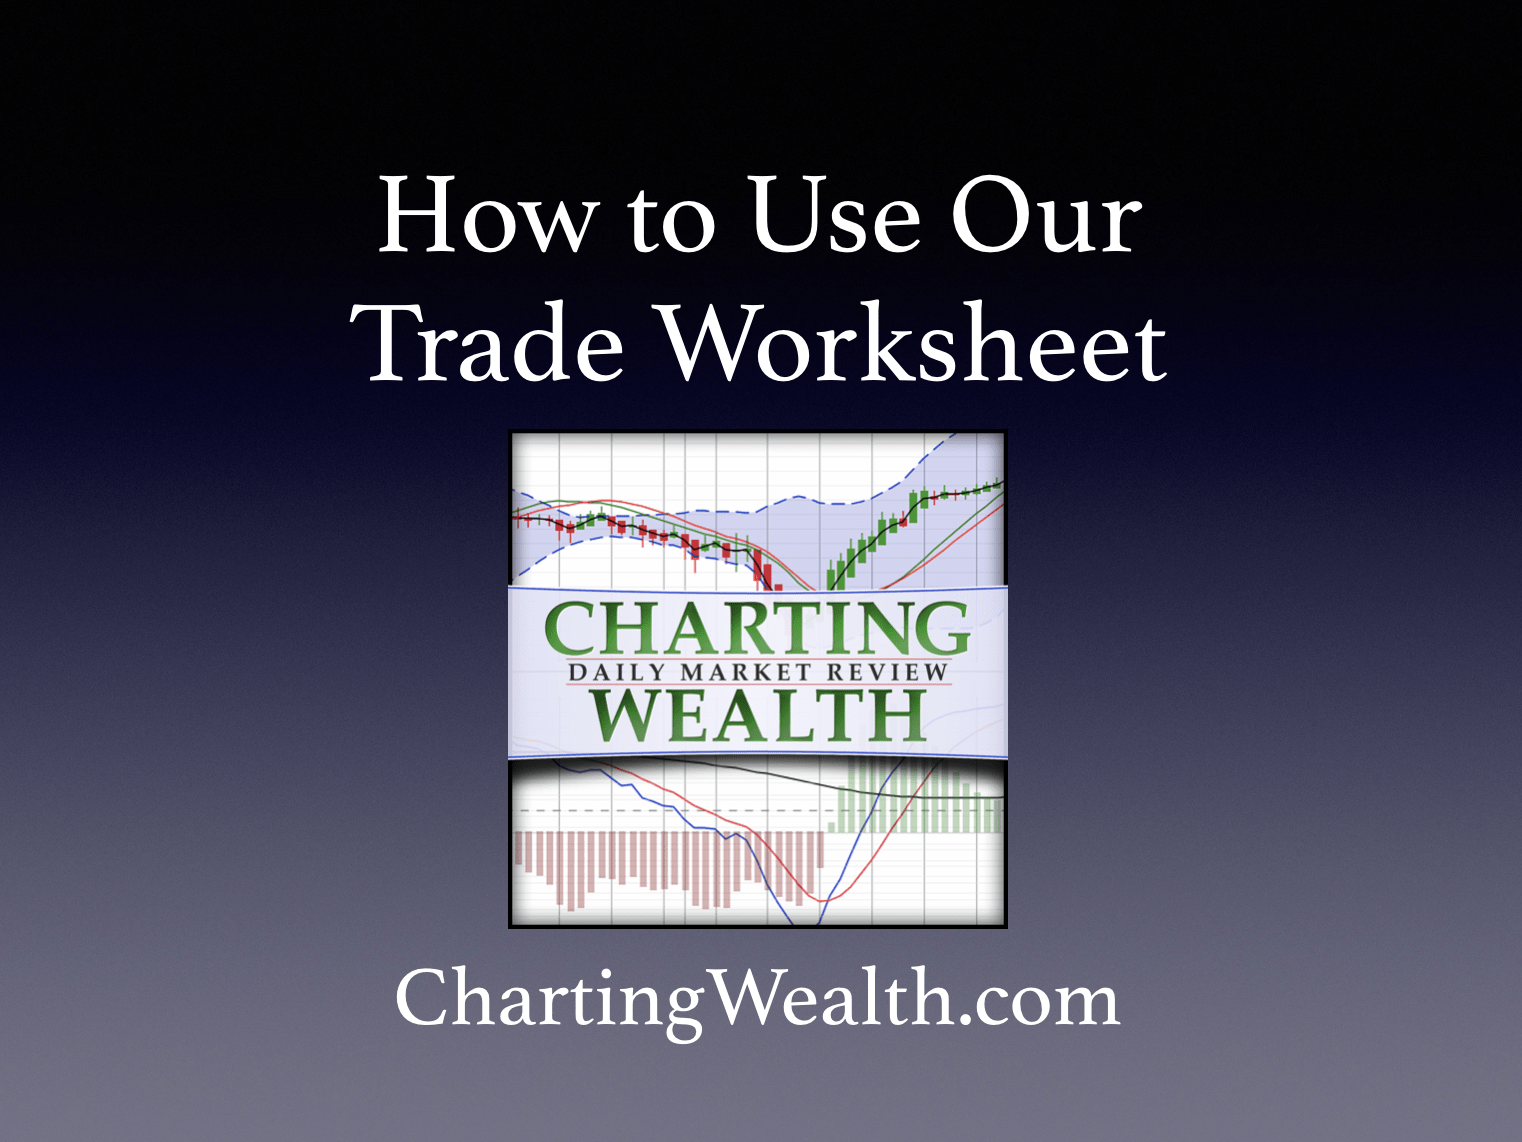 How To Use Our Trade Worksheet